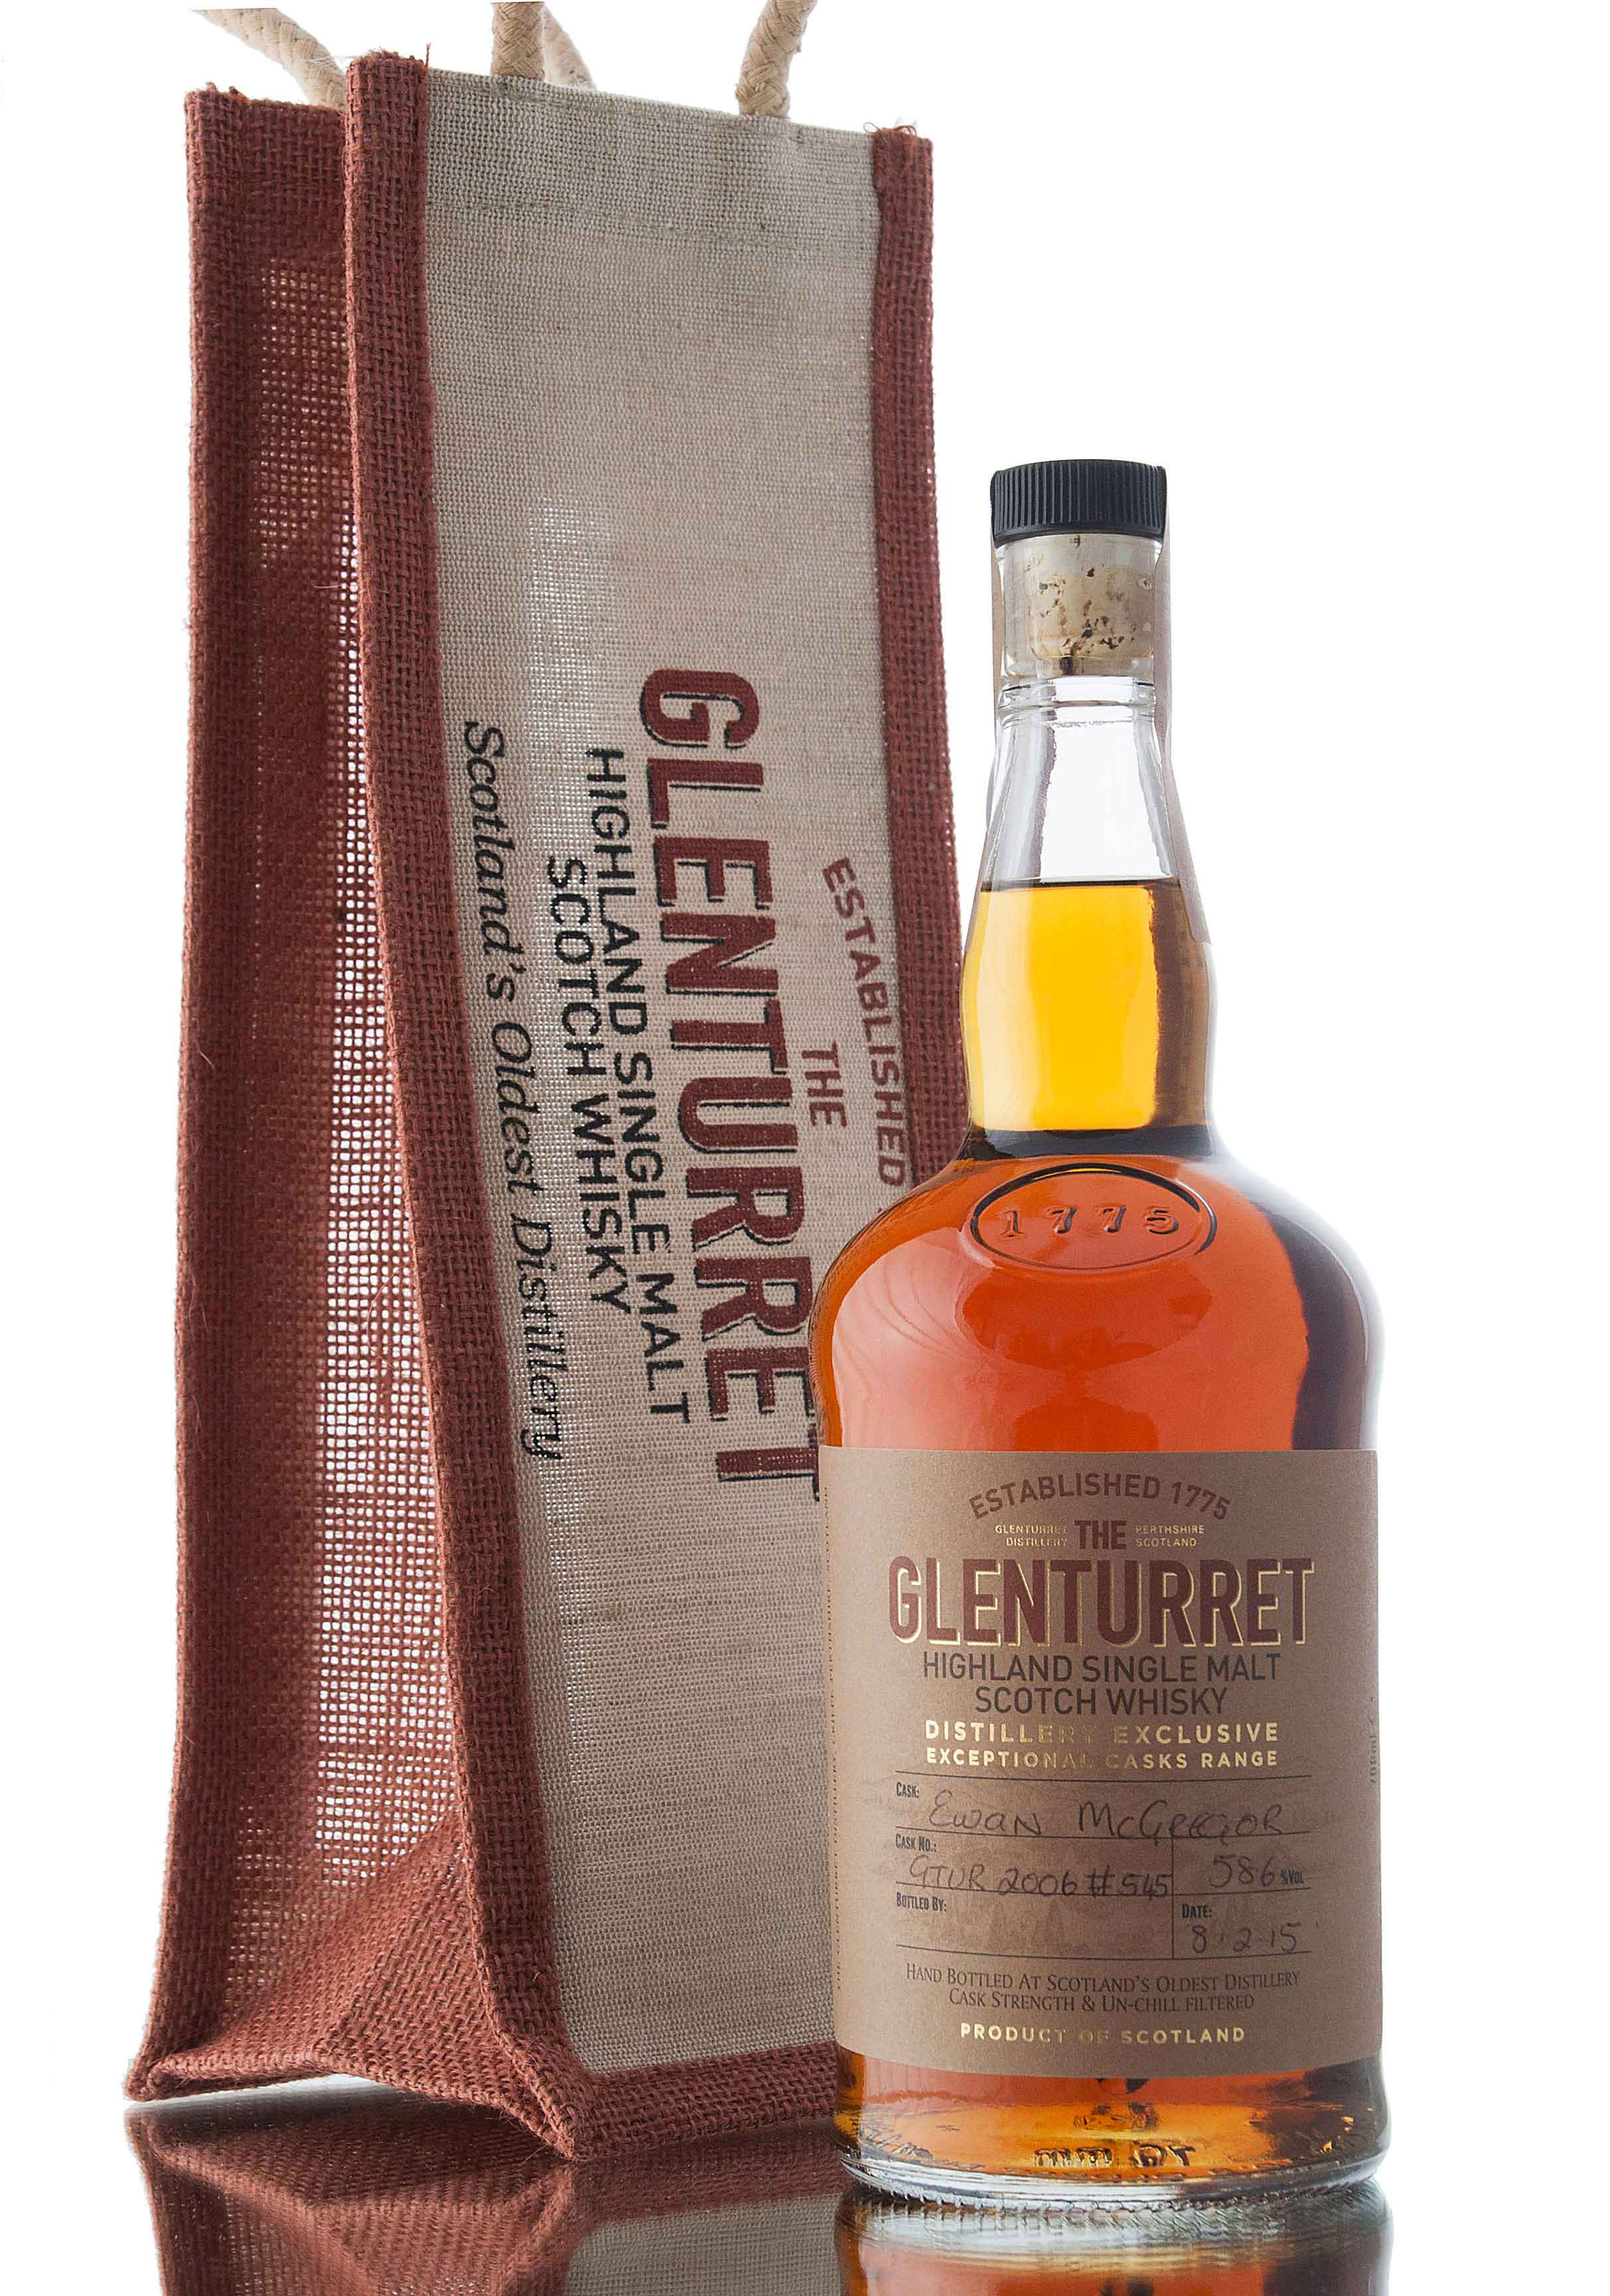 Glenturret 2006 - Single Cask #545 / Ewan McGregor